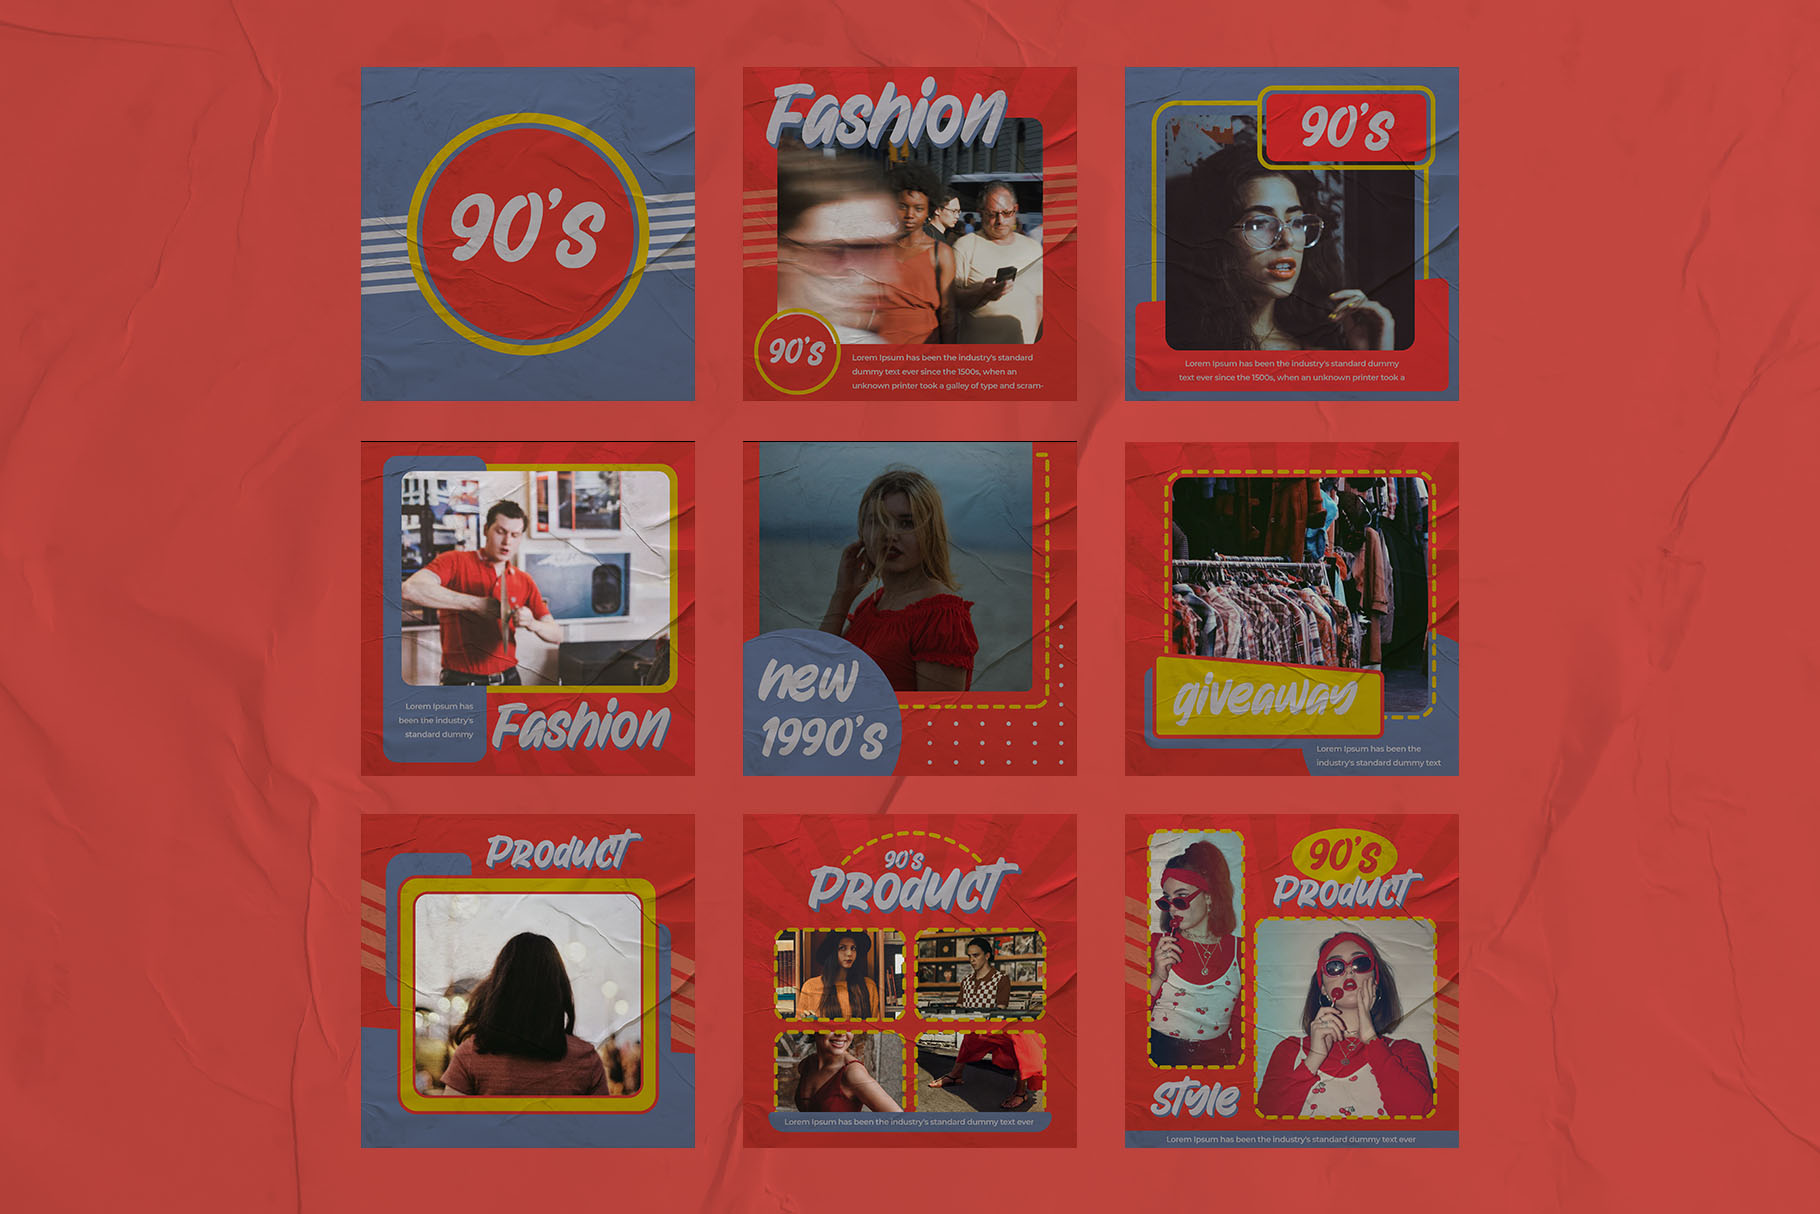 Fashion 90's Instagram Templates example image 3